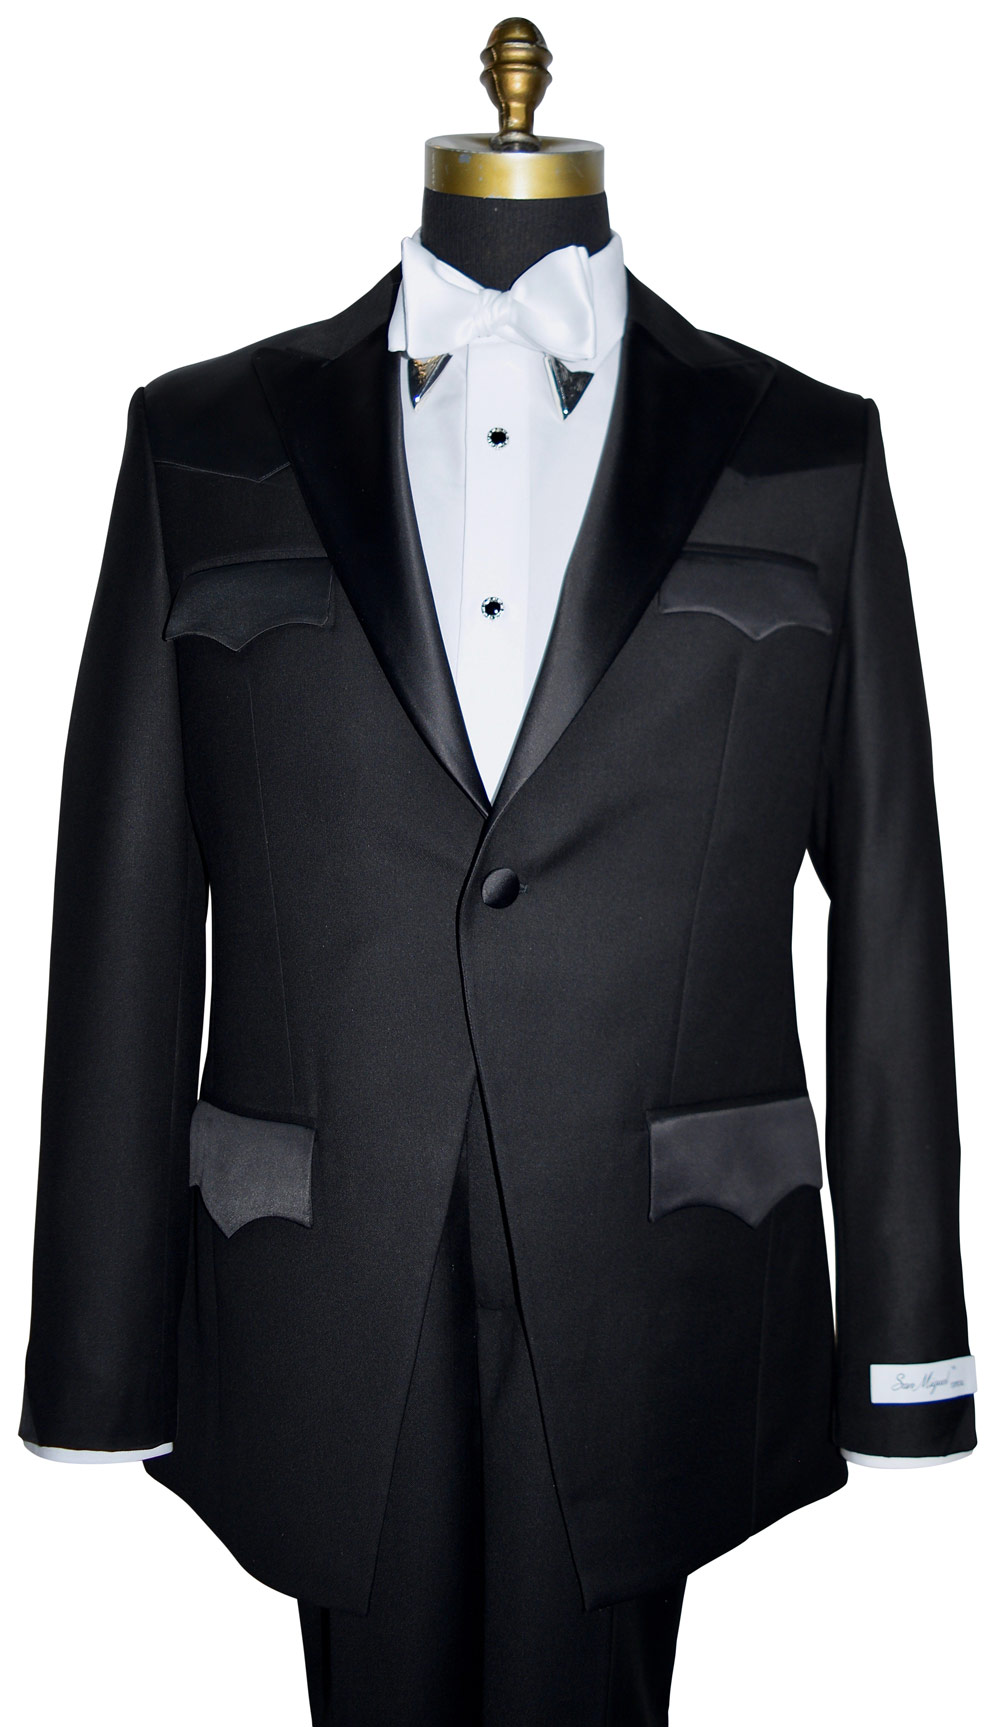 Western Tuxedo With Short Coat